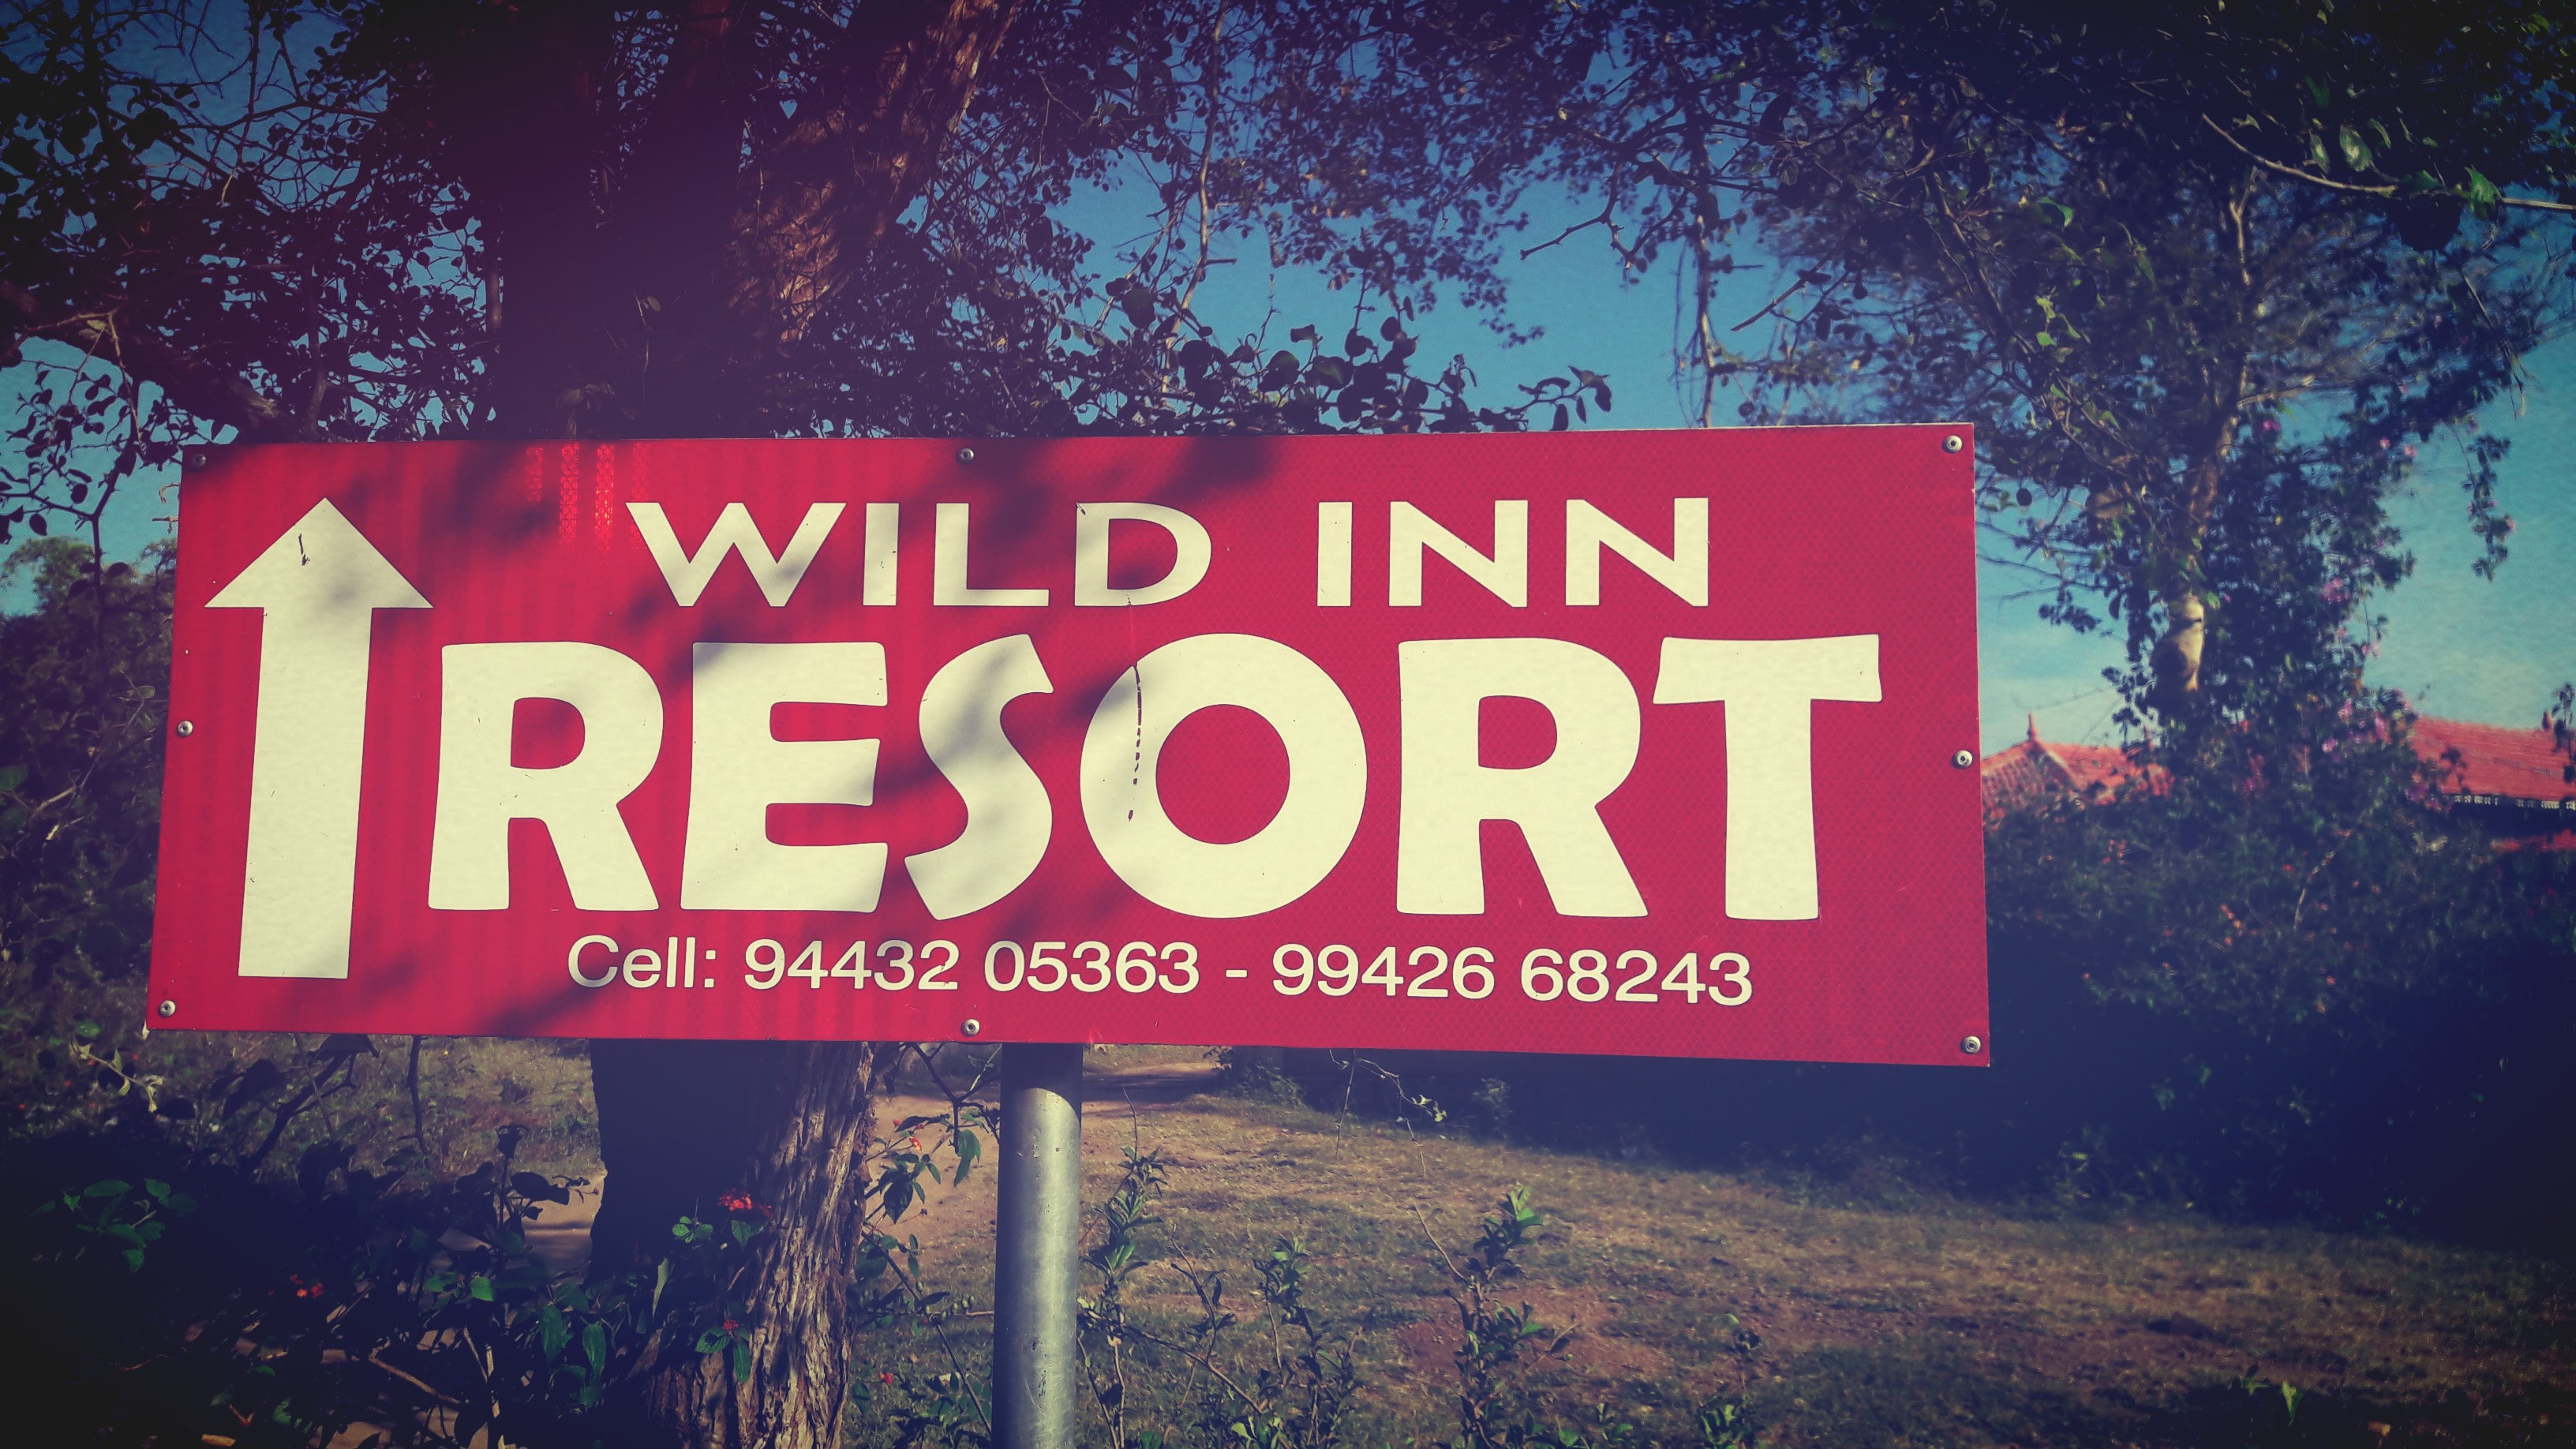 A sign pointing to where the Wild Inn Resort is located.